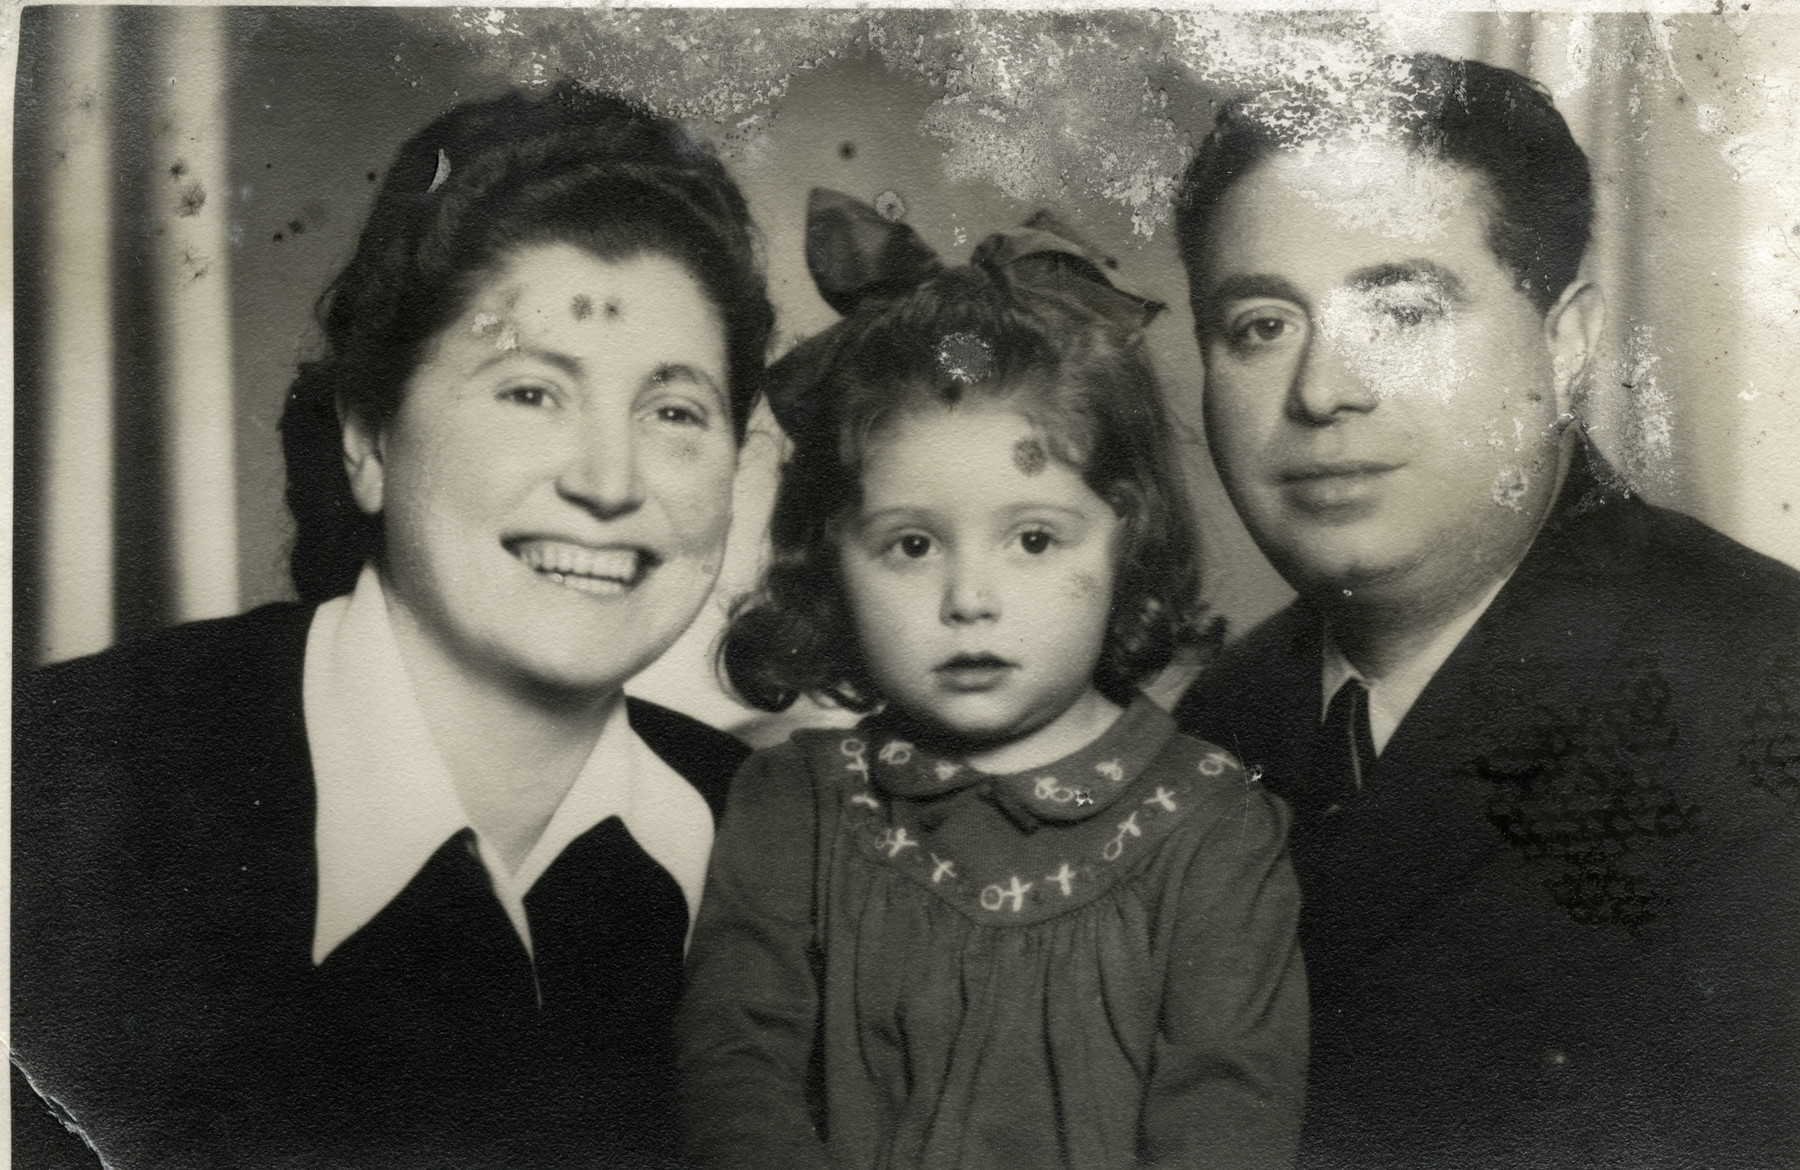 Studio protrait of the Eckstein family after Gerta reunited with her parents.